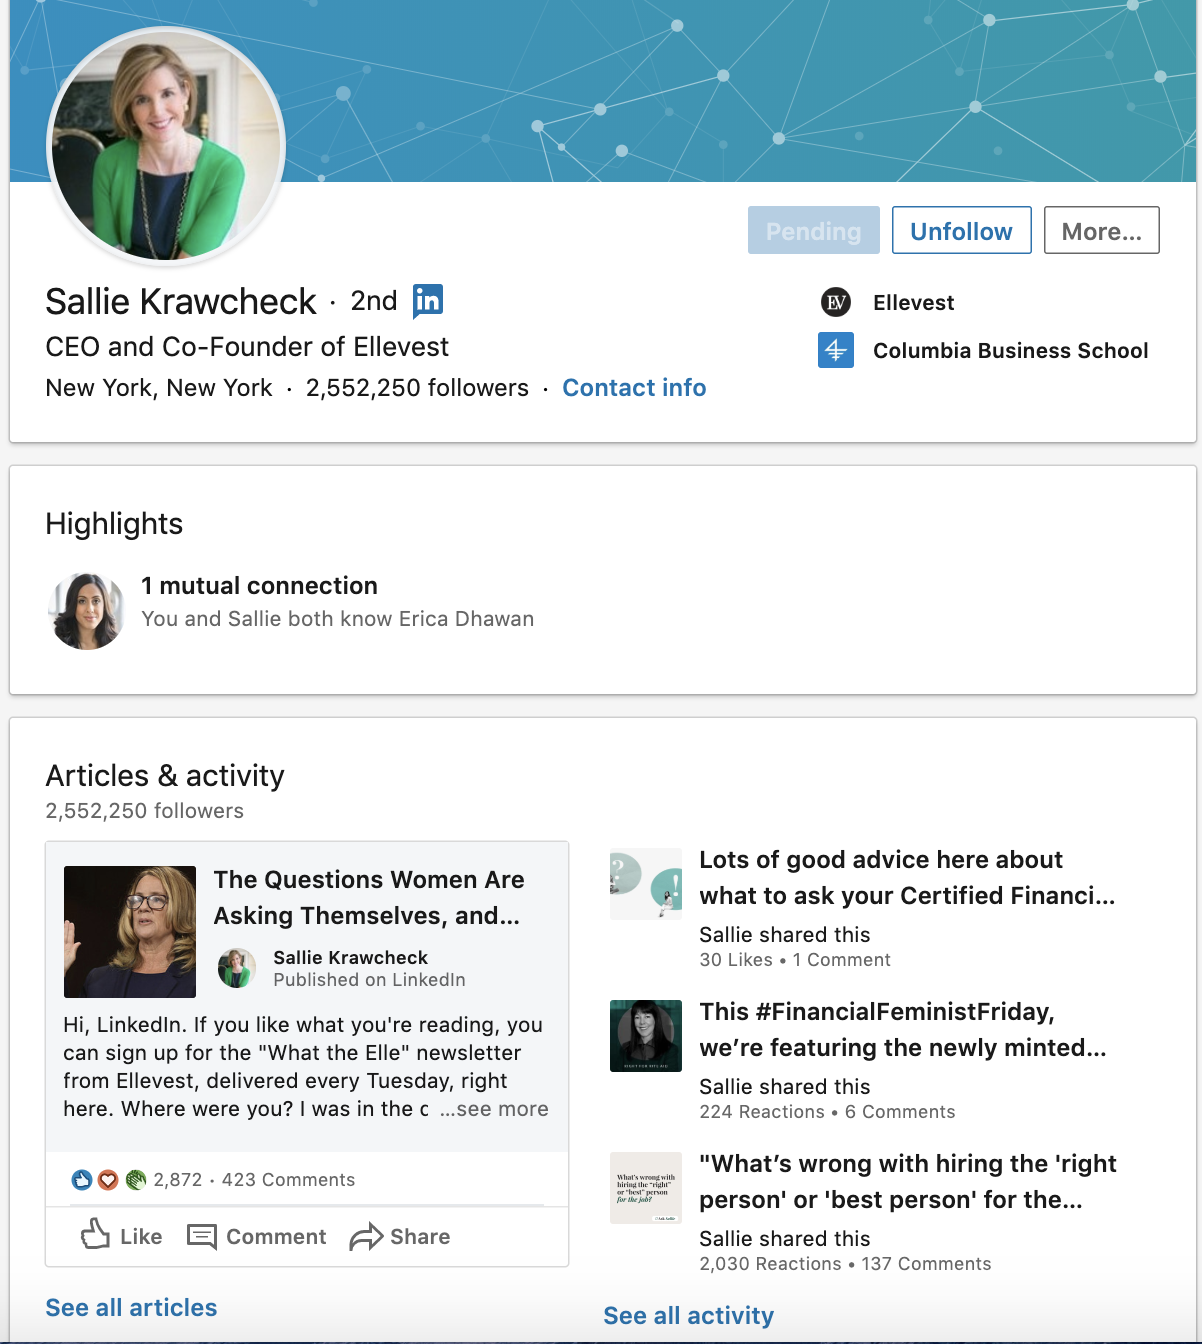 Example of a linked personal profile page